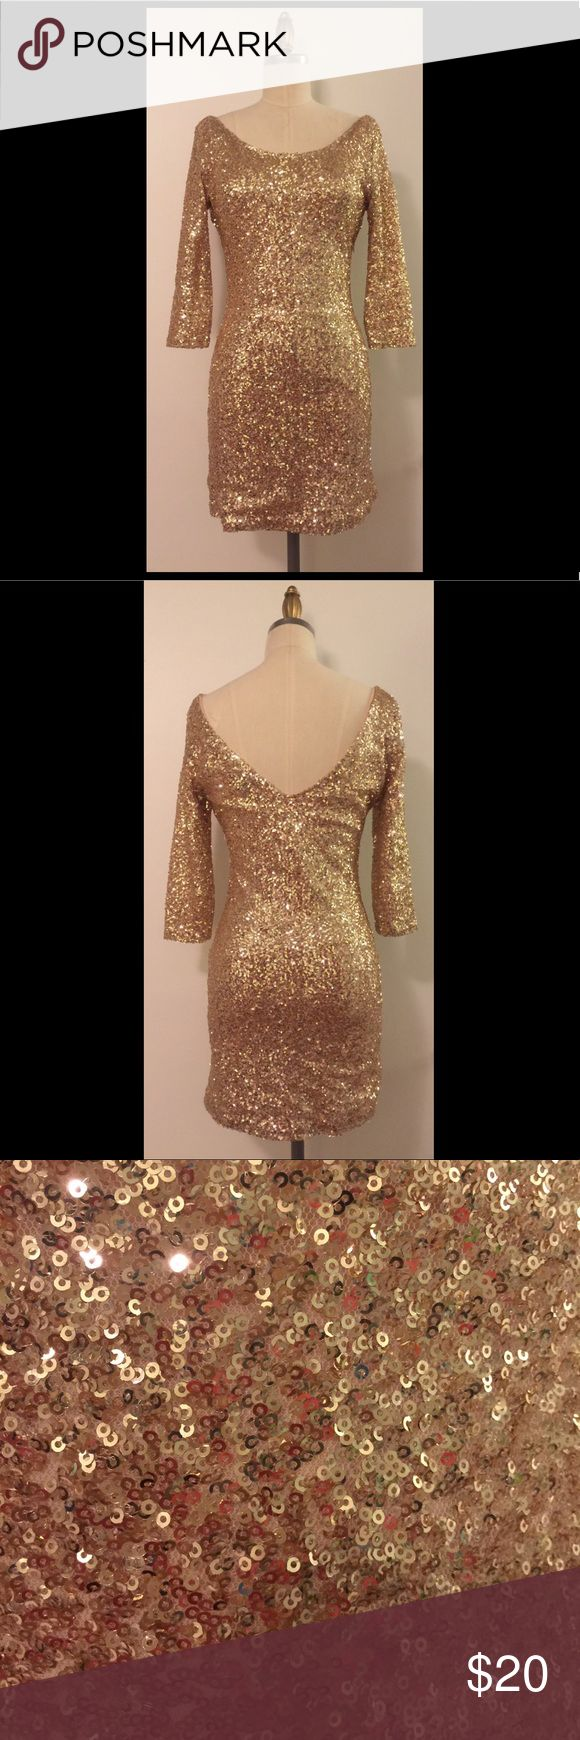 Long sleeve gold sequin dress Long sleeve gold sequin dress with high scoop neckline on the front and a low v-neckline in the back. Mini skirt length but still long enough to sit comfortably in!! Perfect for New Years or a holiday party! Has a side zipper to help you shimmy into this sparkling number!!! Forever 21 Dresses Long Sleeve